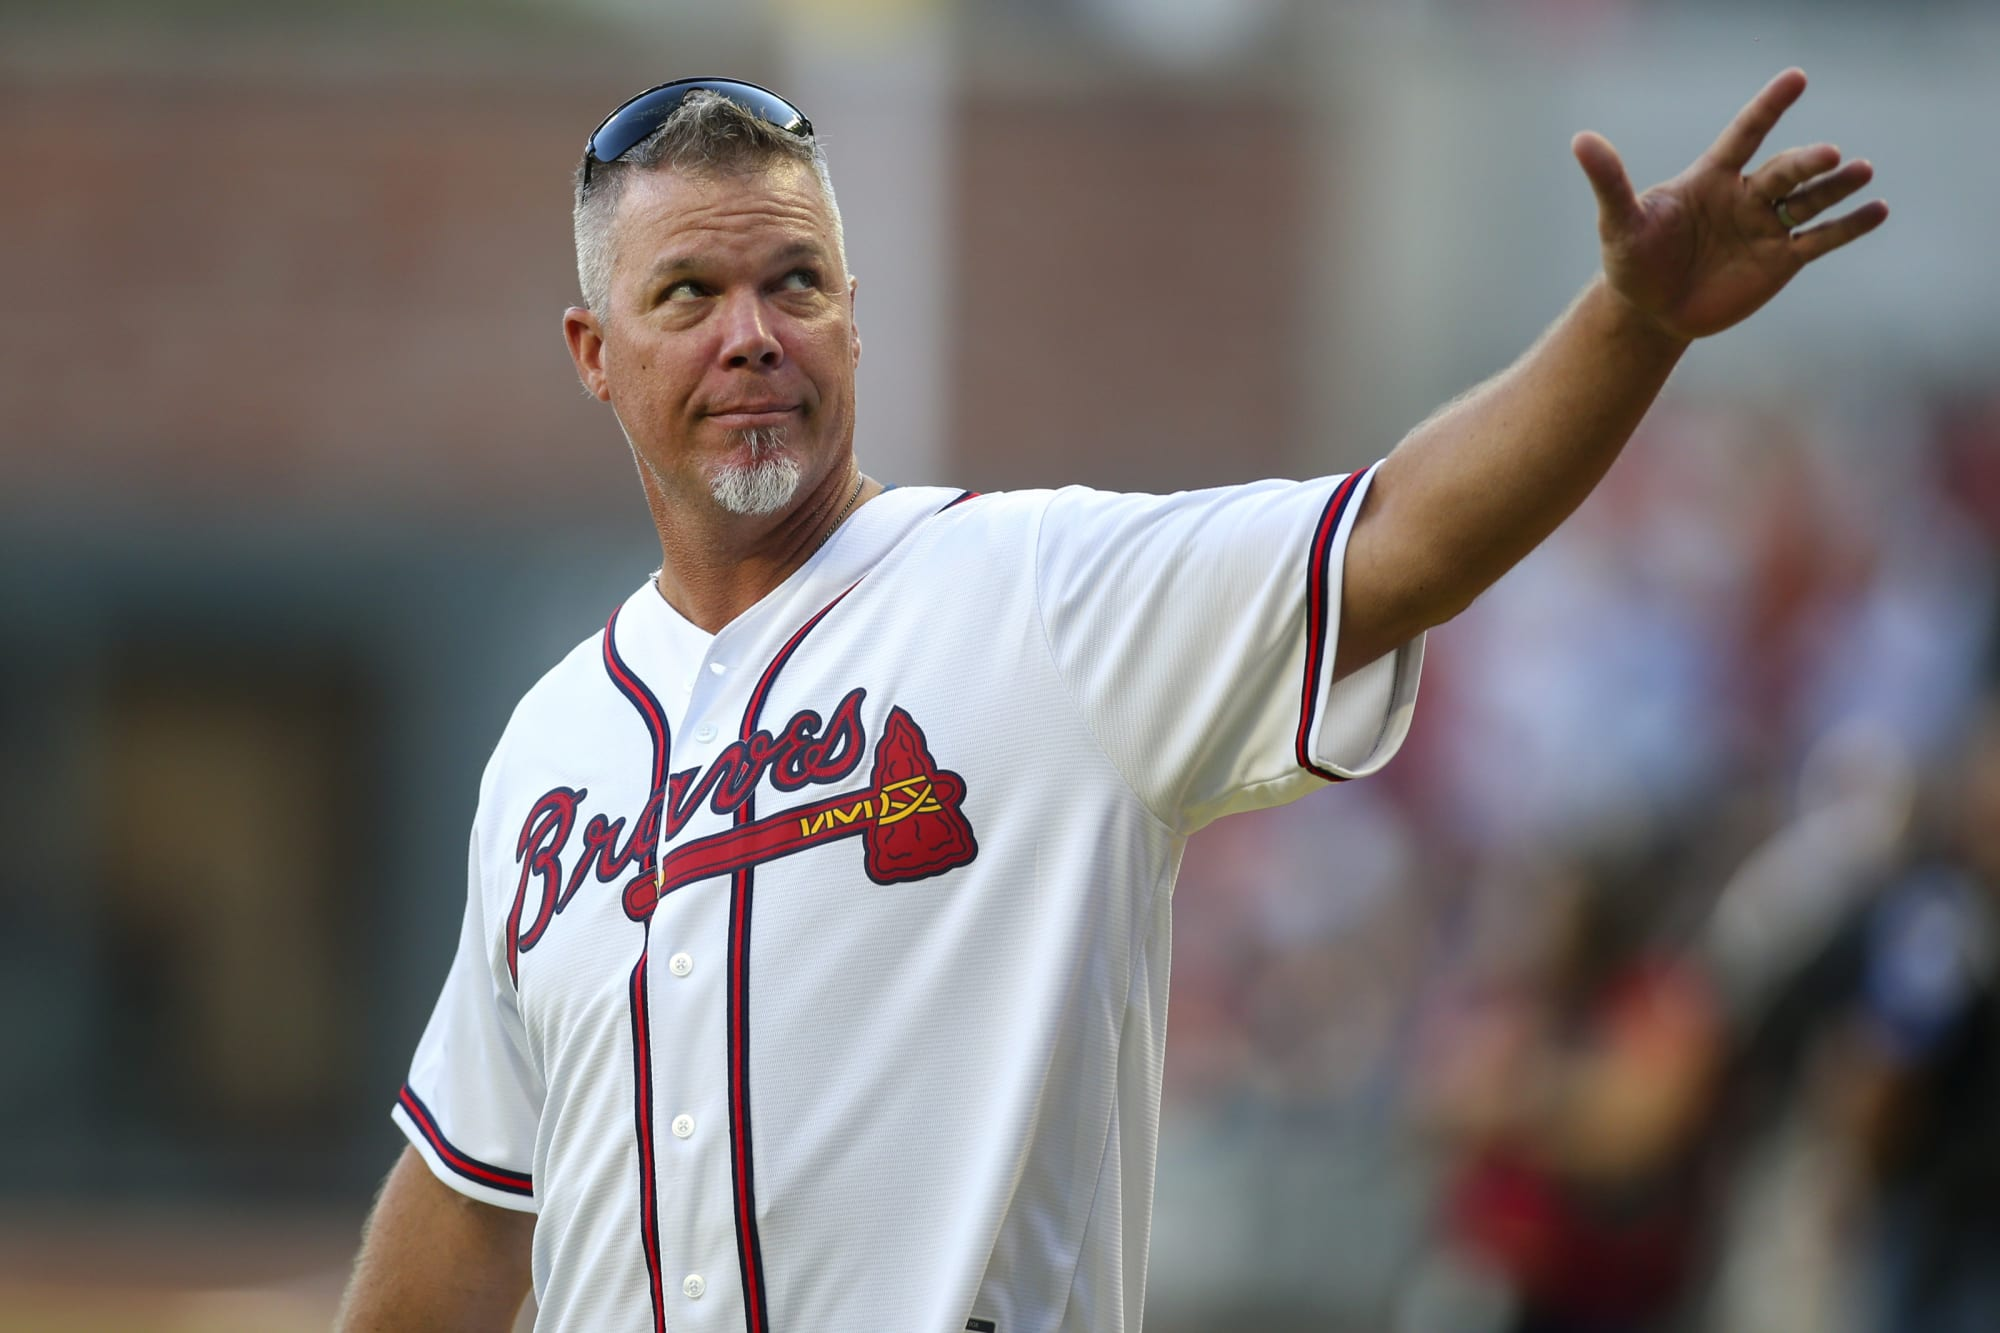 Chipper Jones shares picture of jersey in return to Braves dugout: Just like old times